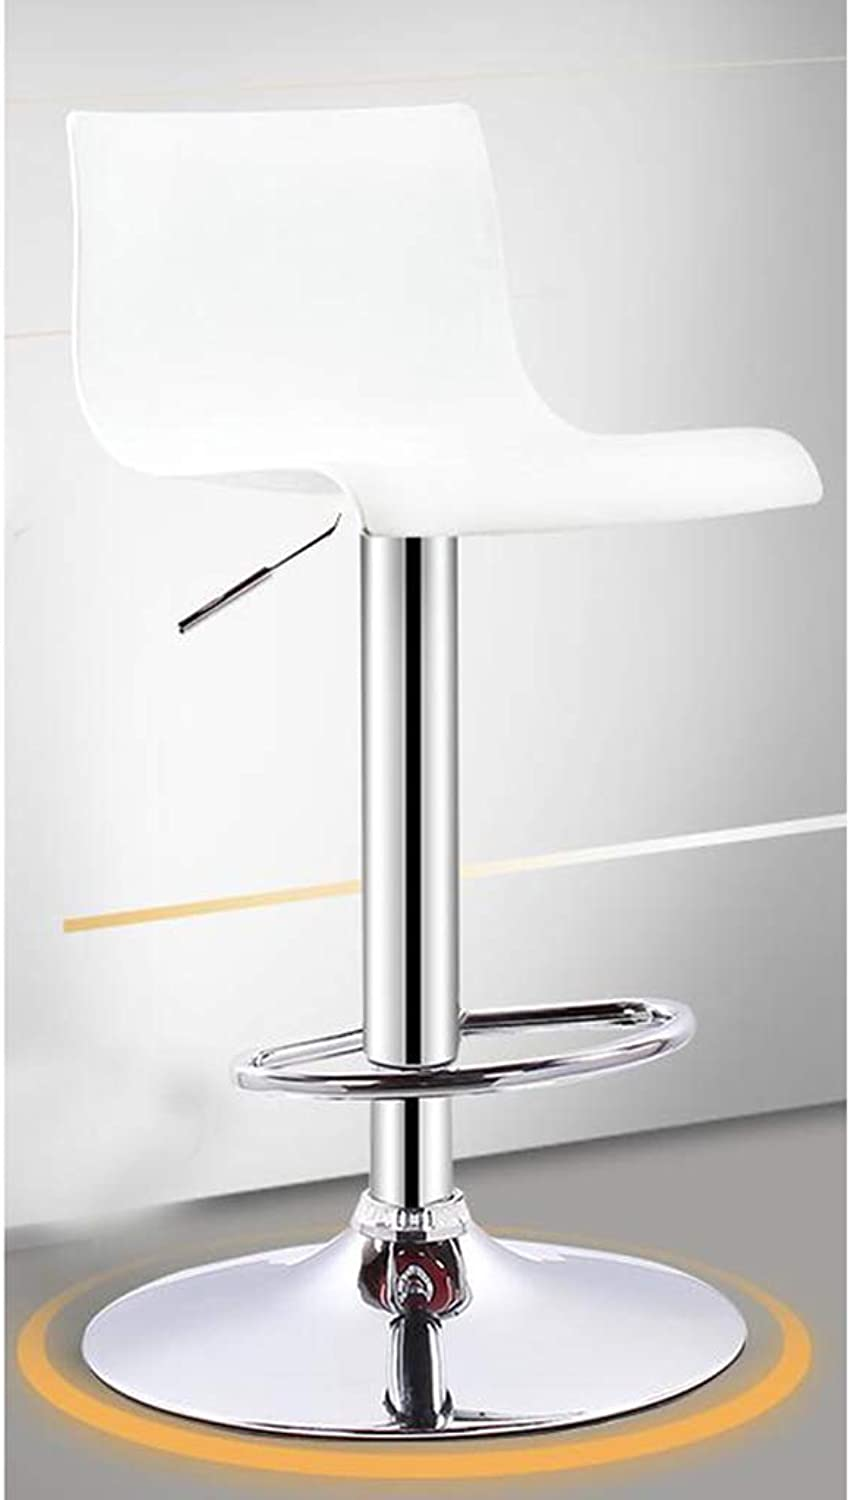 ASJHK Adjustable Height Household Kitchen Swivel Chair with backrest high Stool pp seat Material Metal Gas Rod Black and White Bar Stool (color   White)